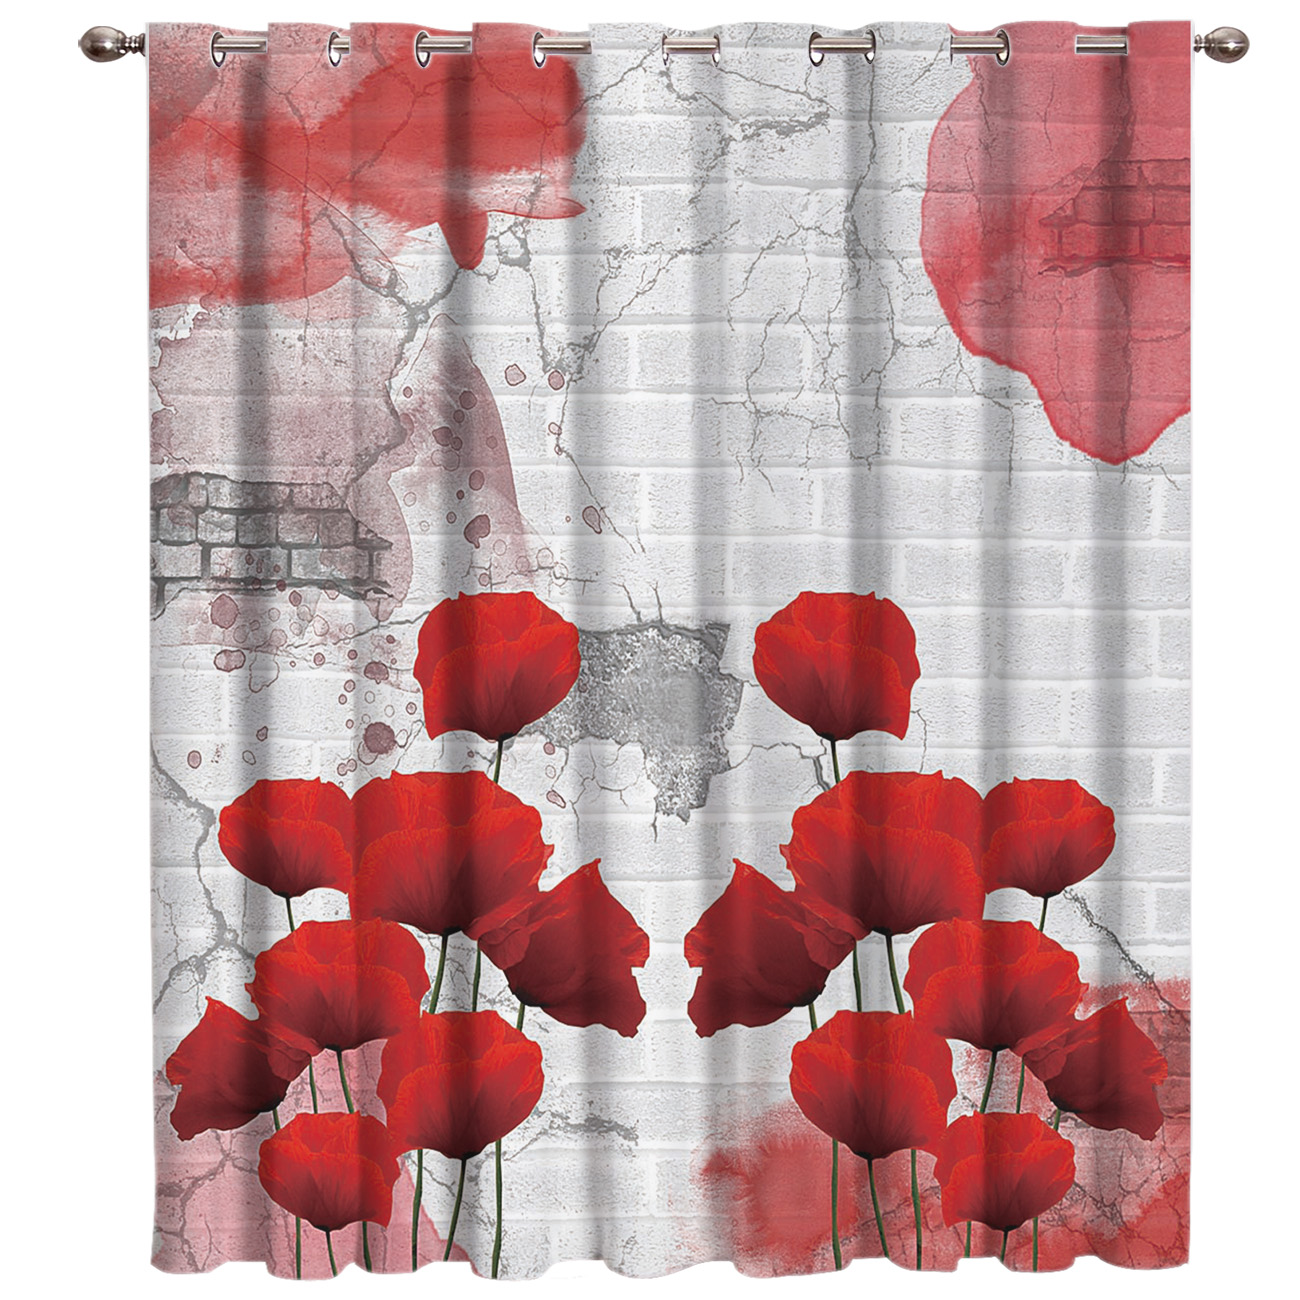 Poppy Flower Room Curtains Large Window